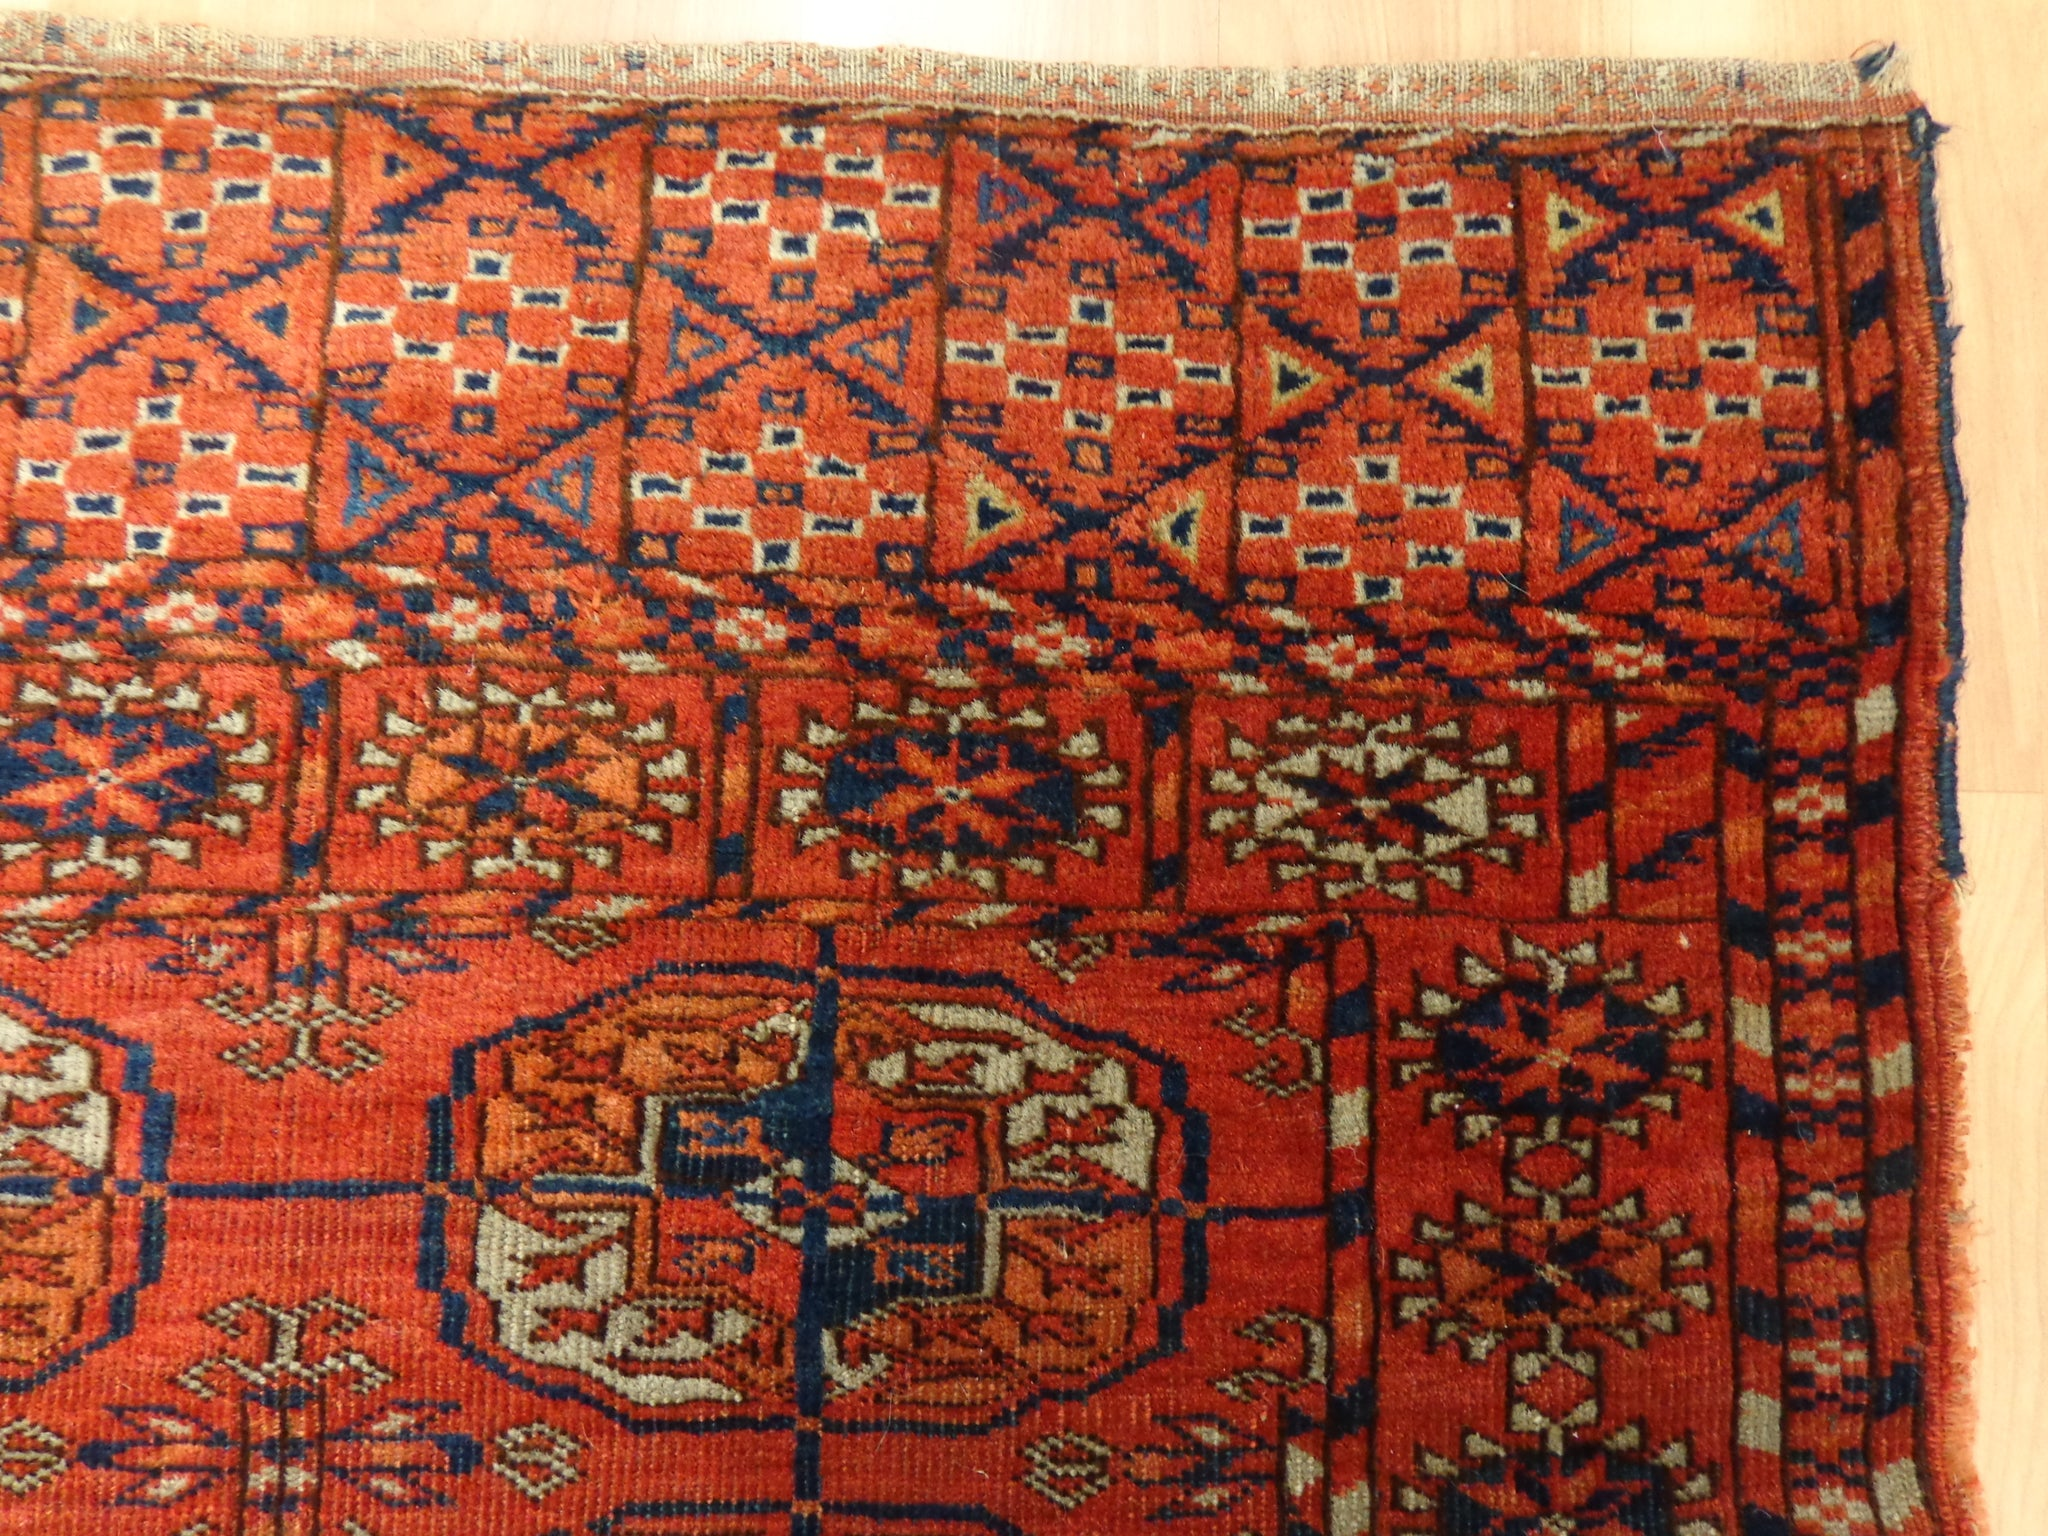 Turkoman Rug, 3' 5 x 3' 10 Brown Orange Bokhara - Jessie's Oriental Rugs